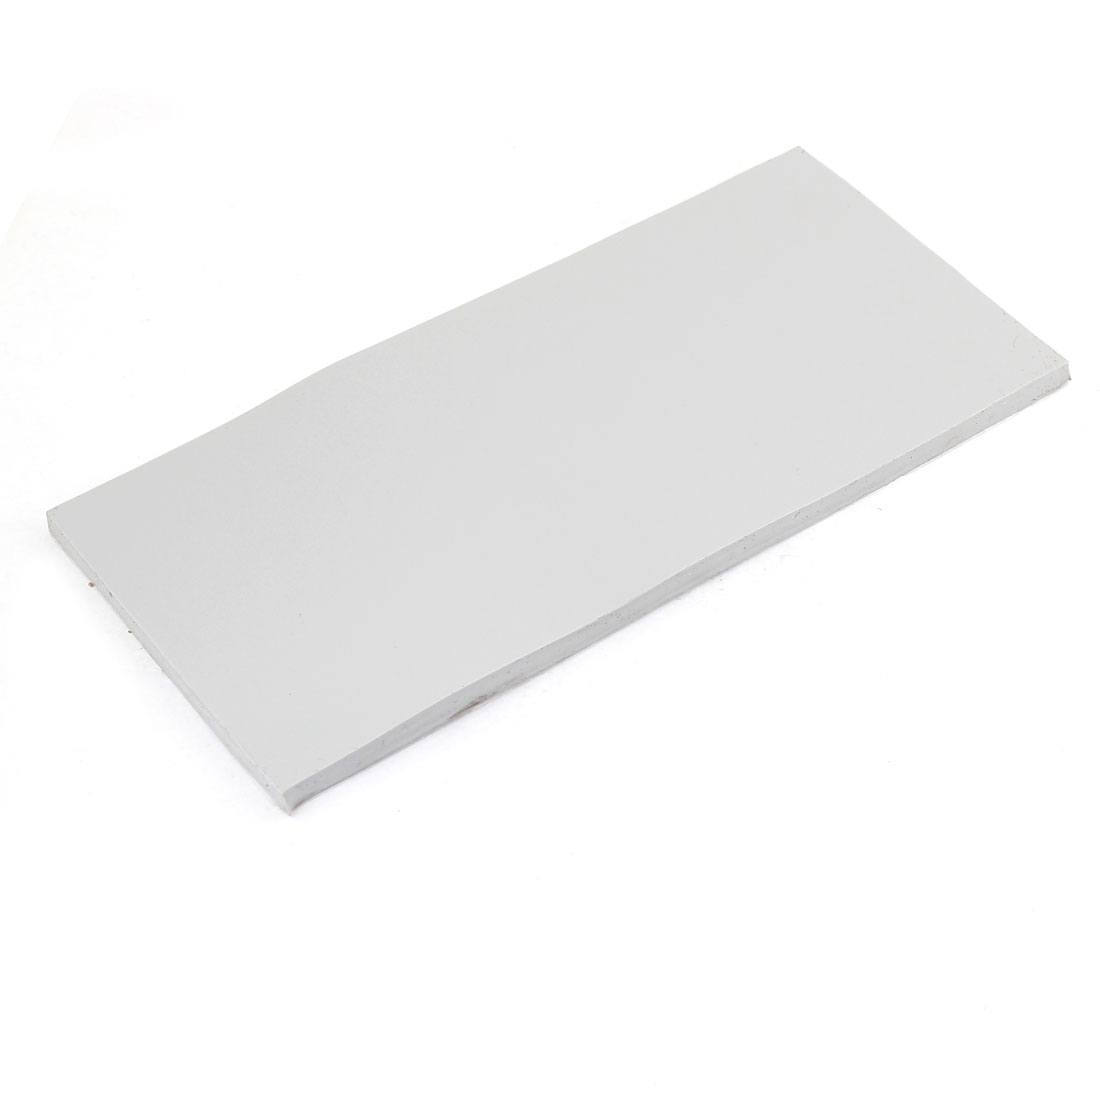 "0.24"" Thick Thermal Pad 200mm x 100mm for PC IC Chipset Chip CPU RAM"